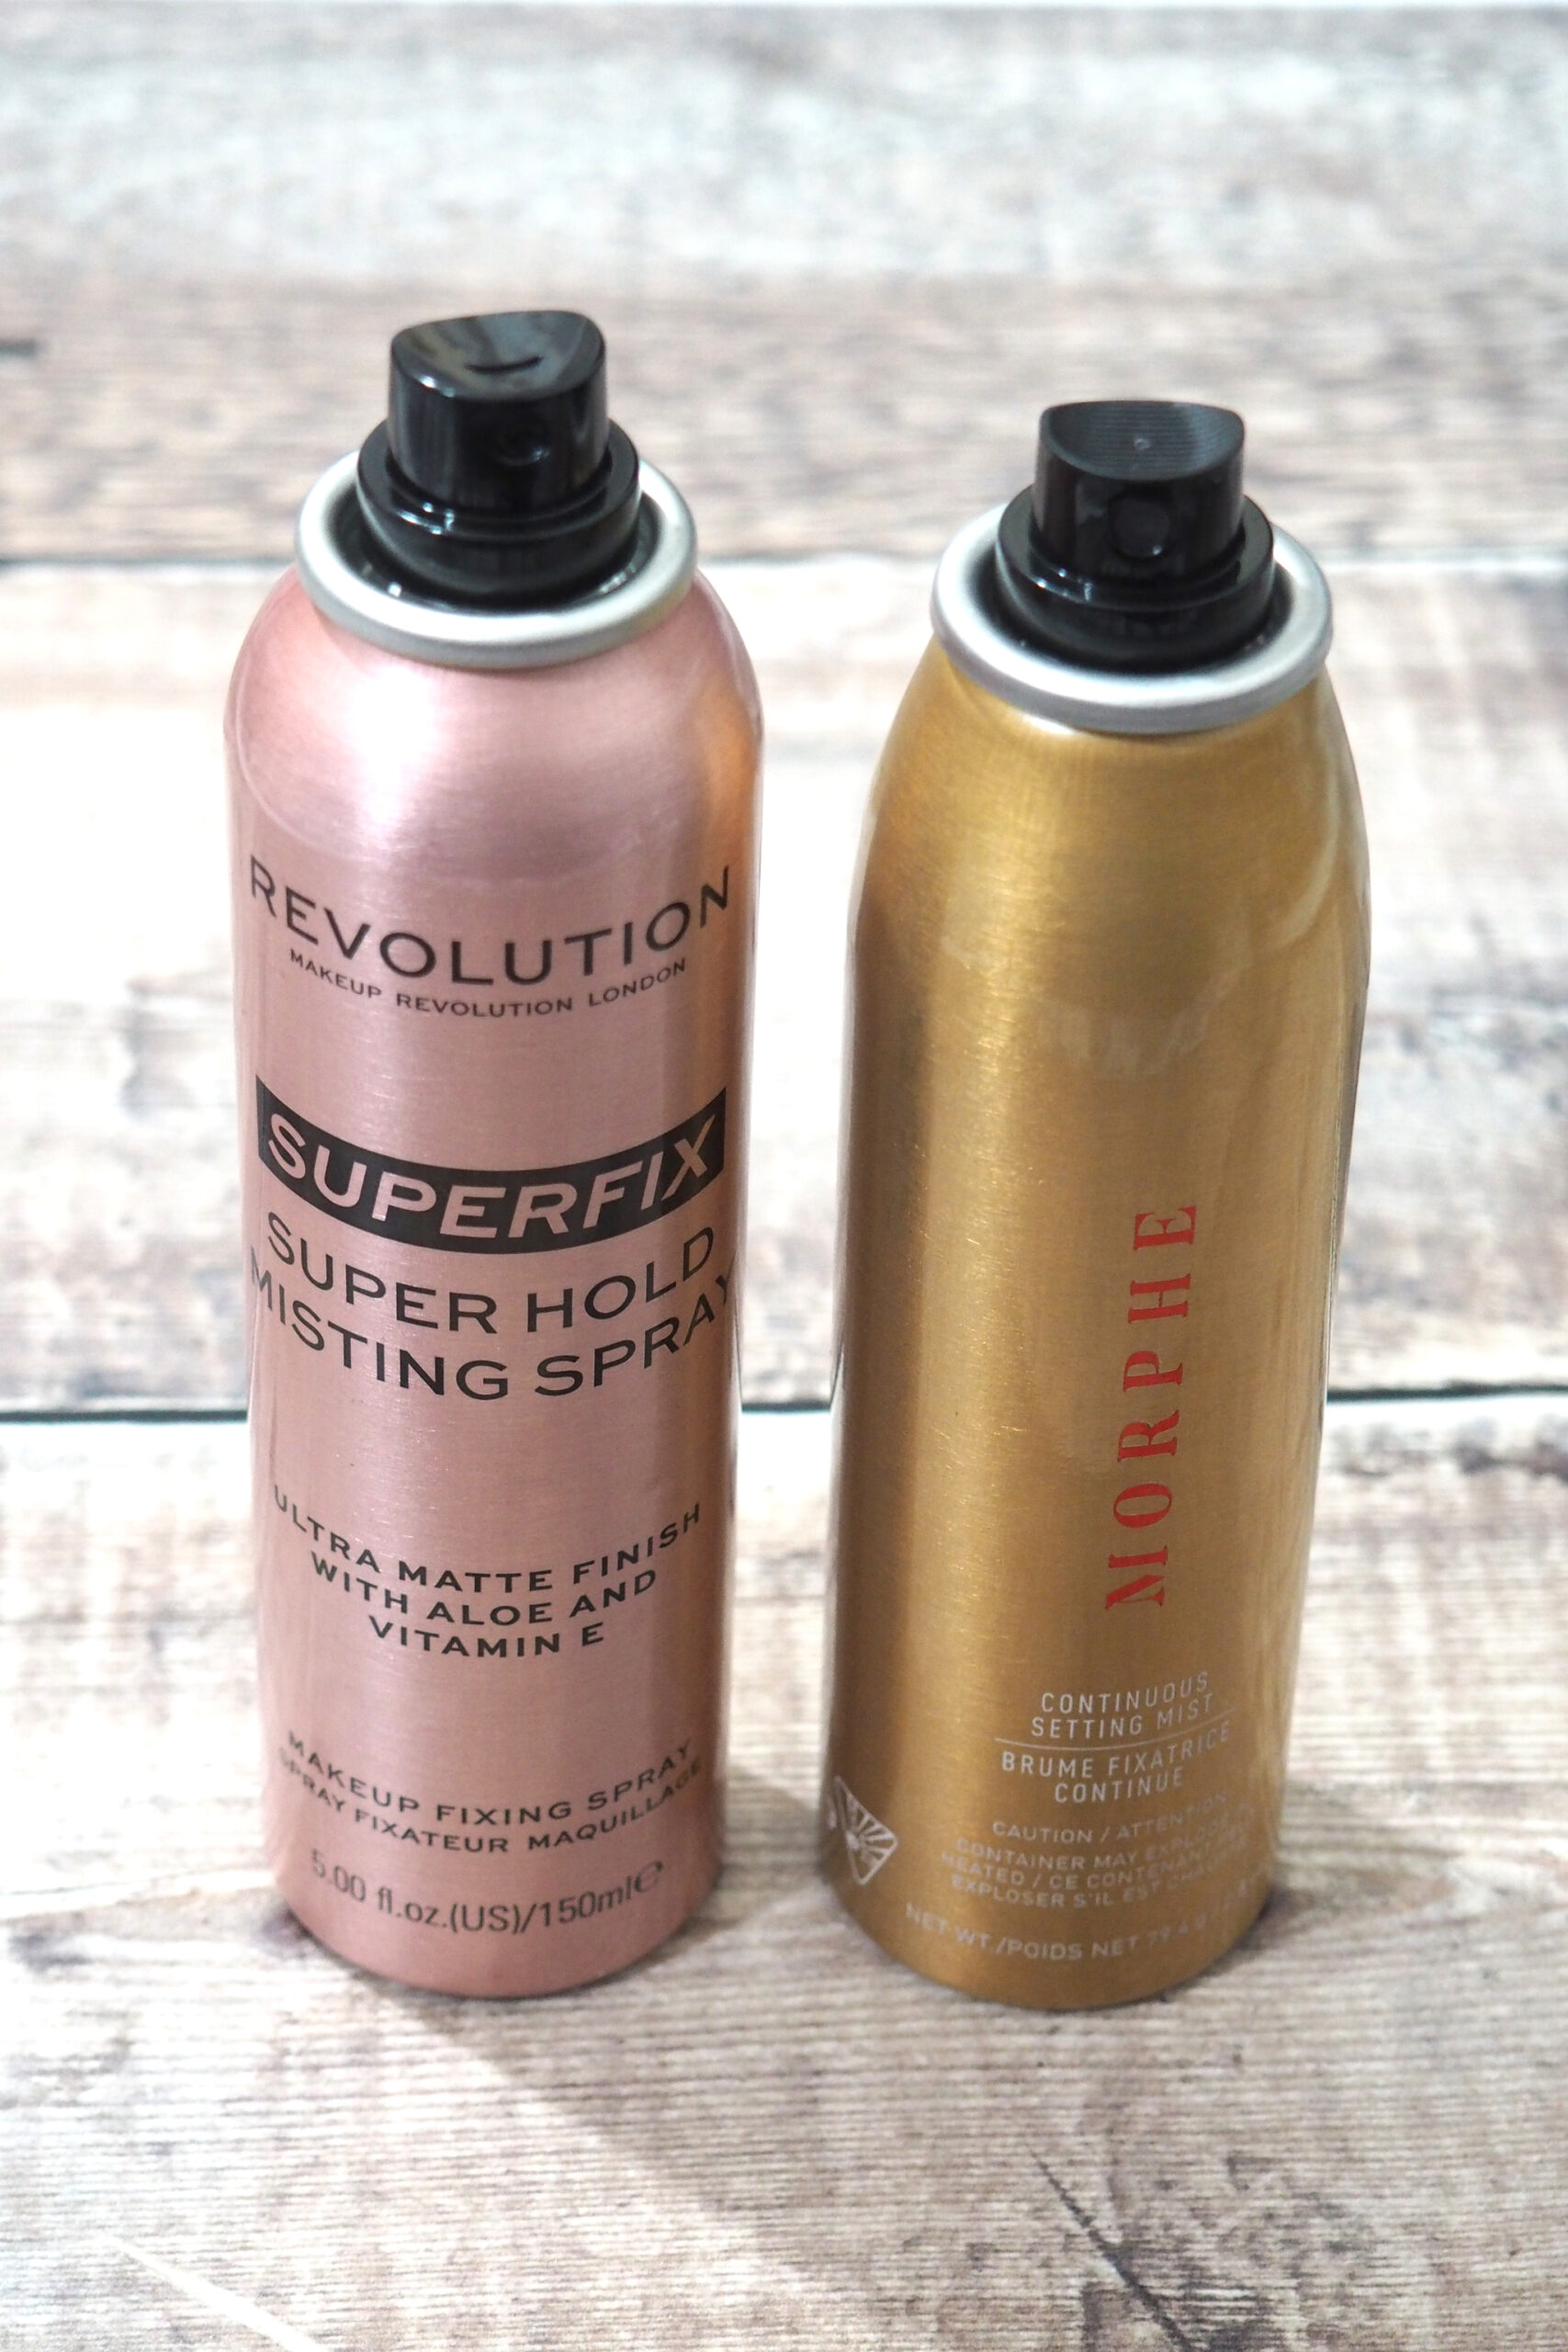 Revolution Superfix Super Hold Misting Spray Vs Morphe Continuous Setting Spray